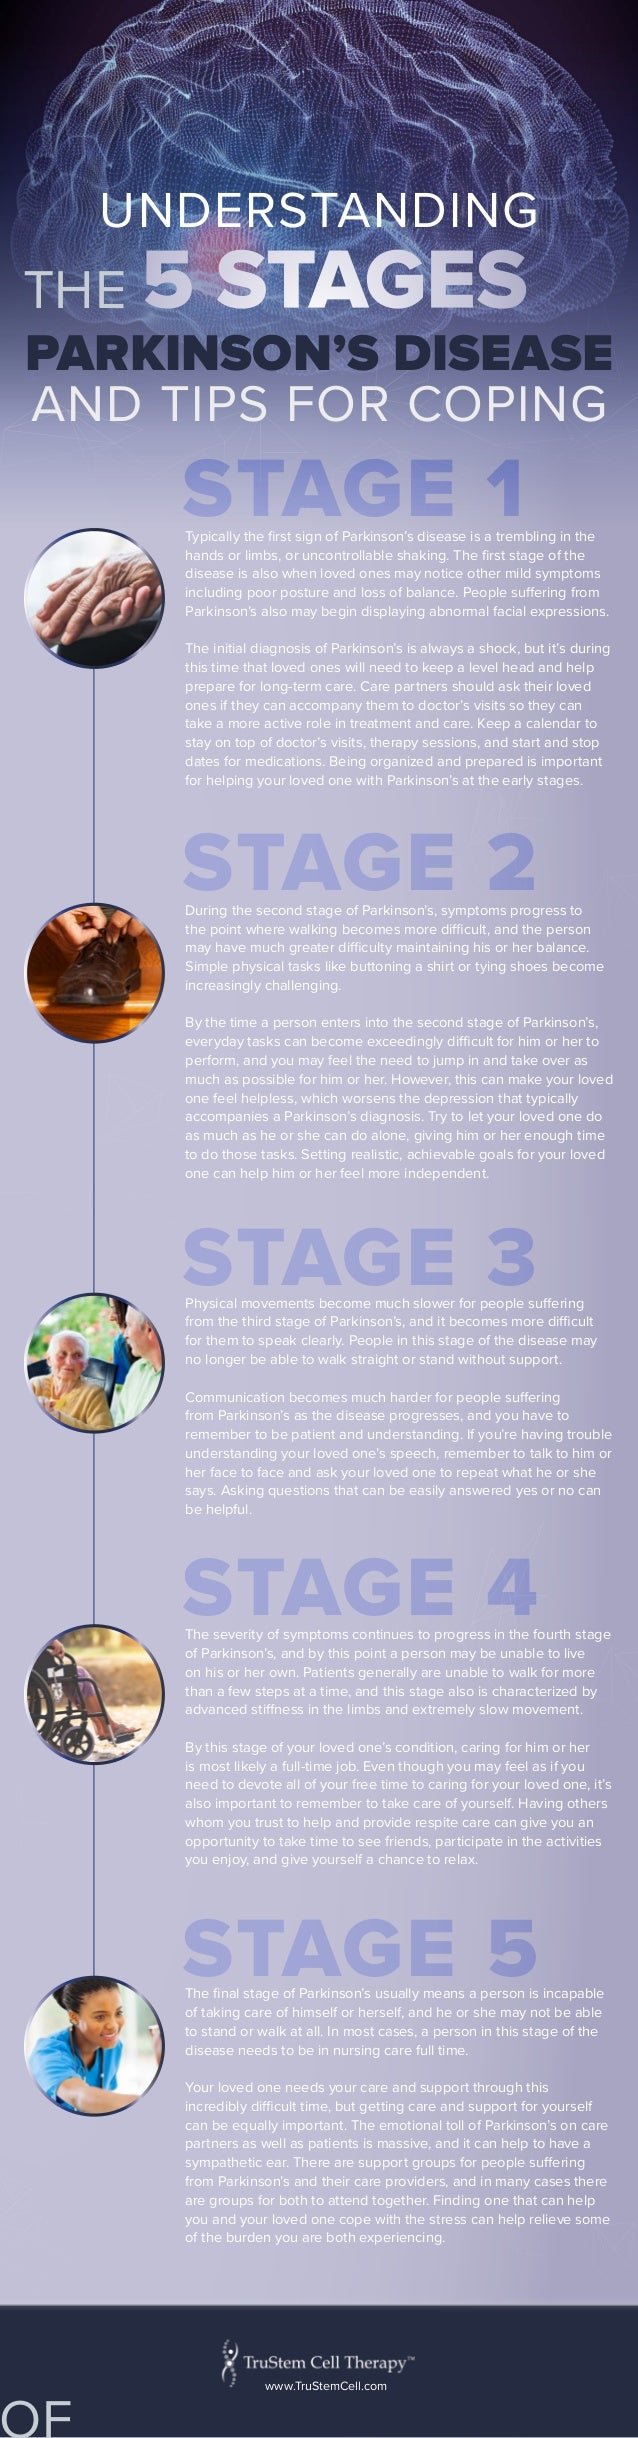 STAGE 2 STAGE 3 STAGE 4 STAGE 5 STAGE 1Typically the first sign of Parkinson's disease is a trembling in the hands or limb...